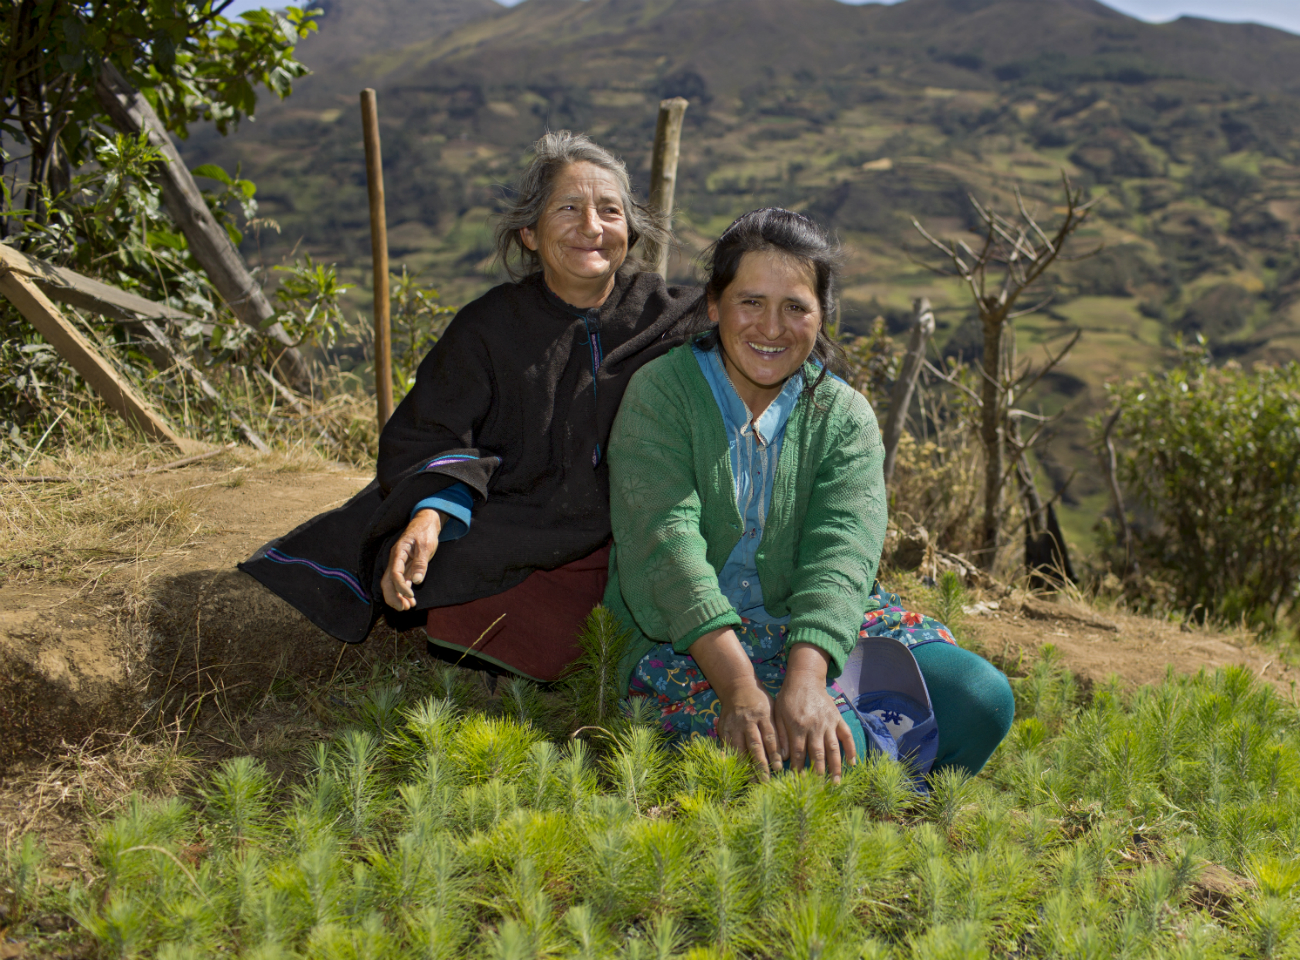 Two cocoa farmers planting trees in Peru